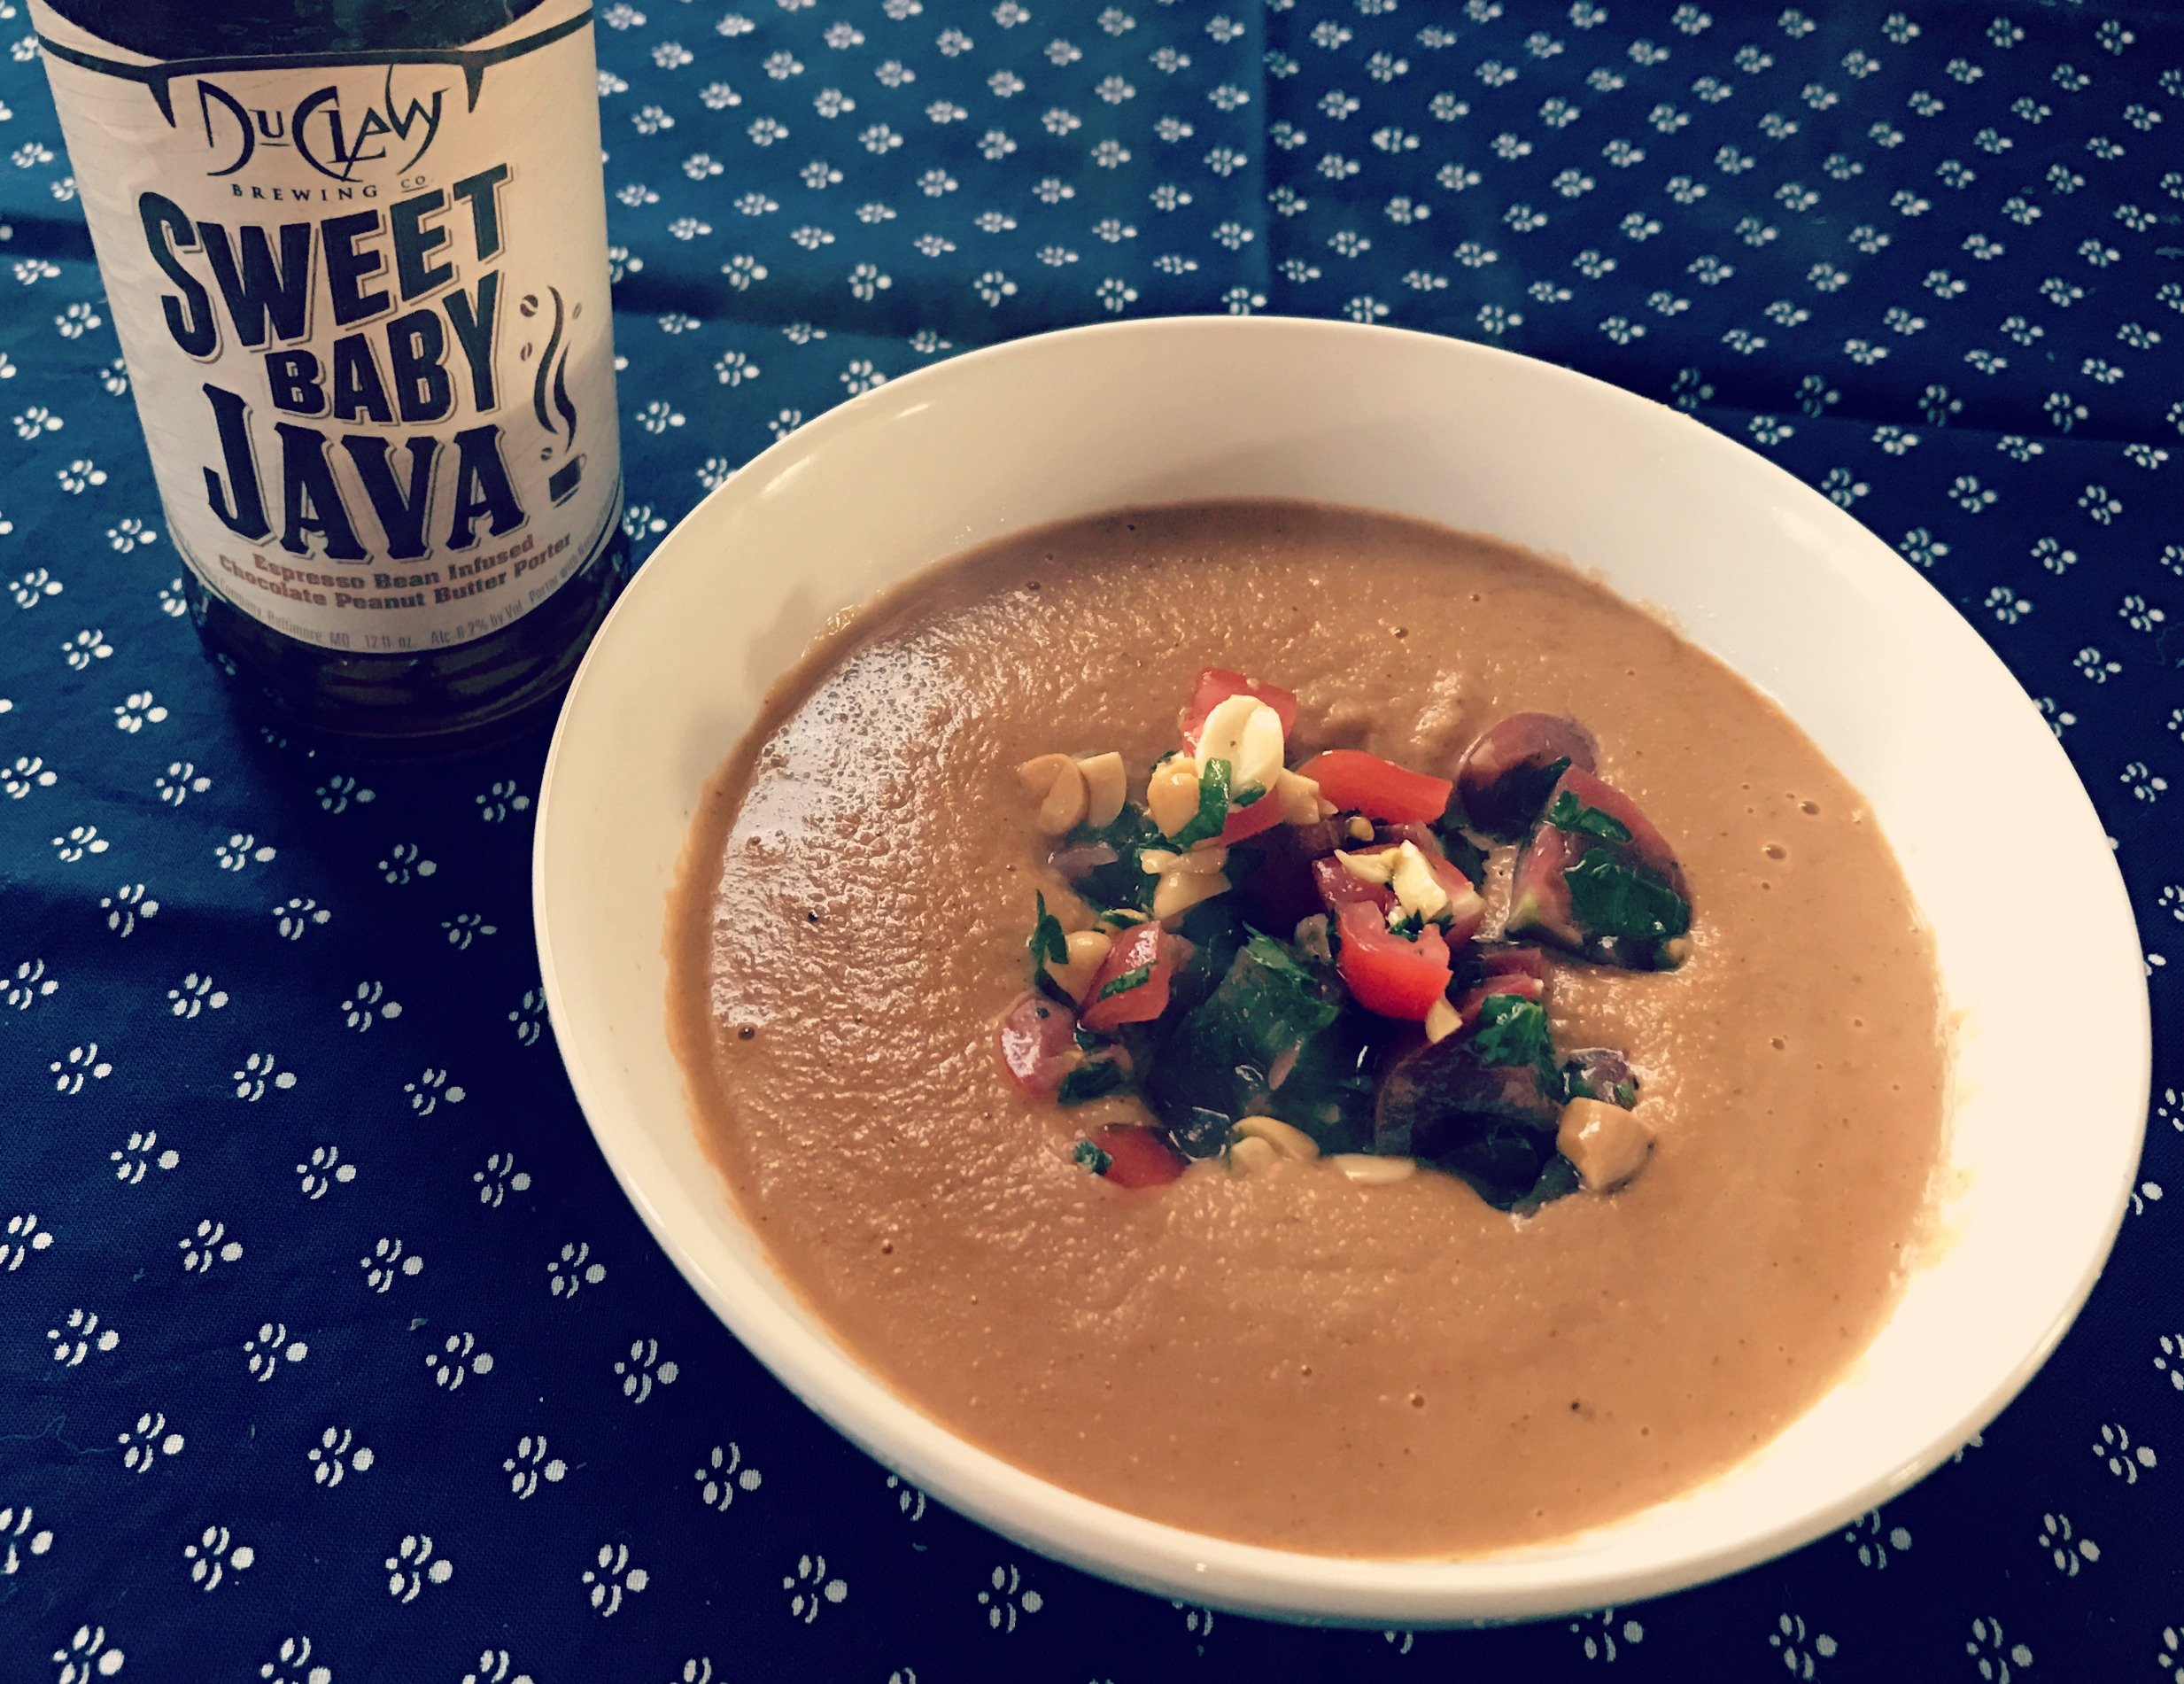 DuClaw Sweet Baby Java Virginia Peanut Soup